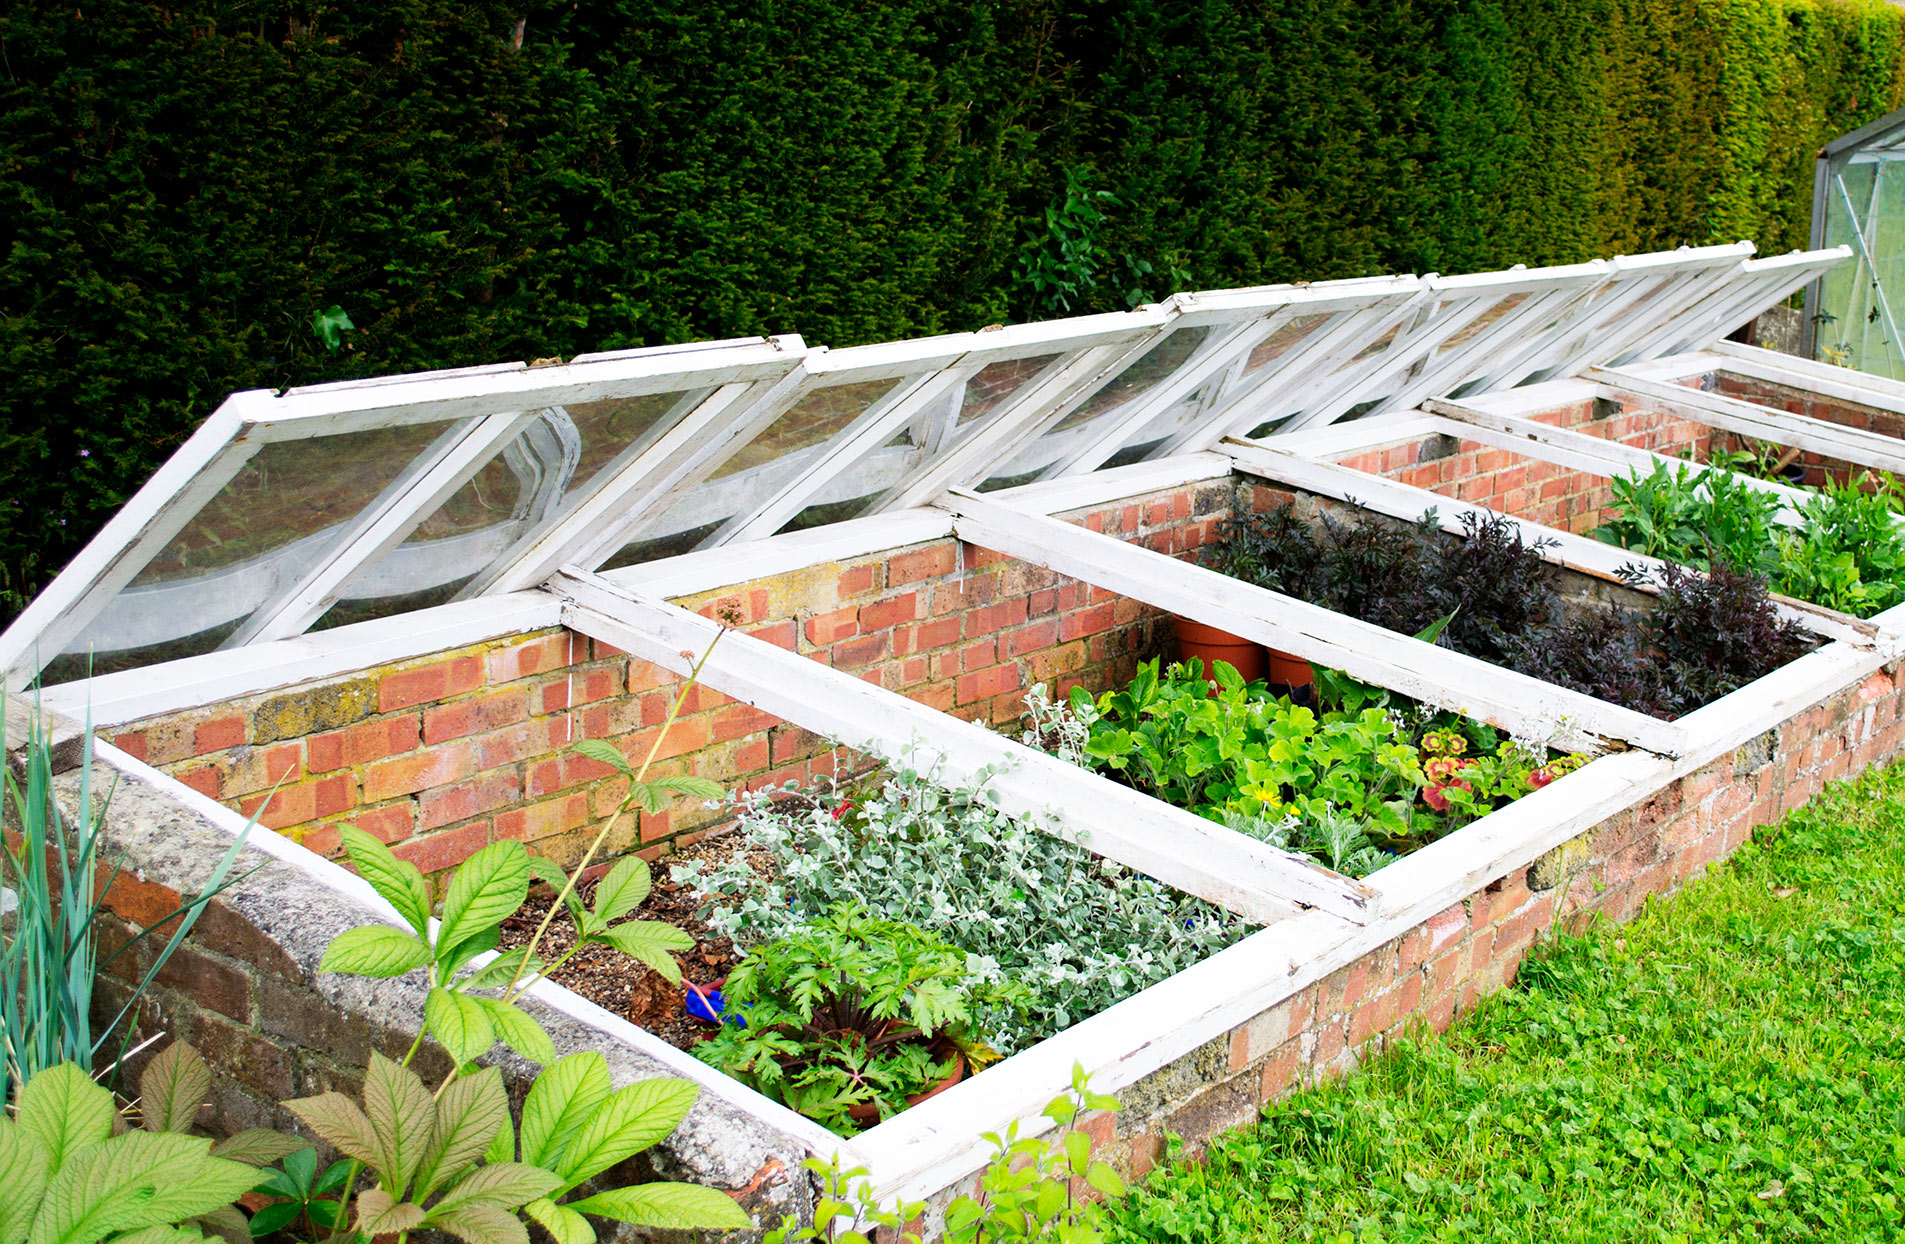 cold frames with plants in a landscaped garden